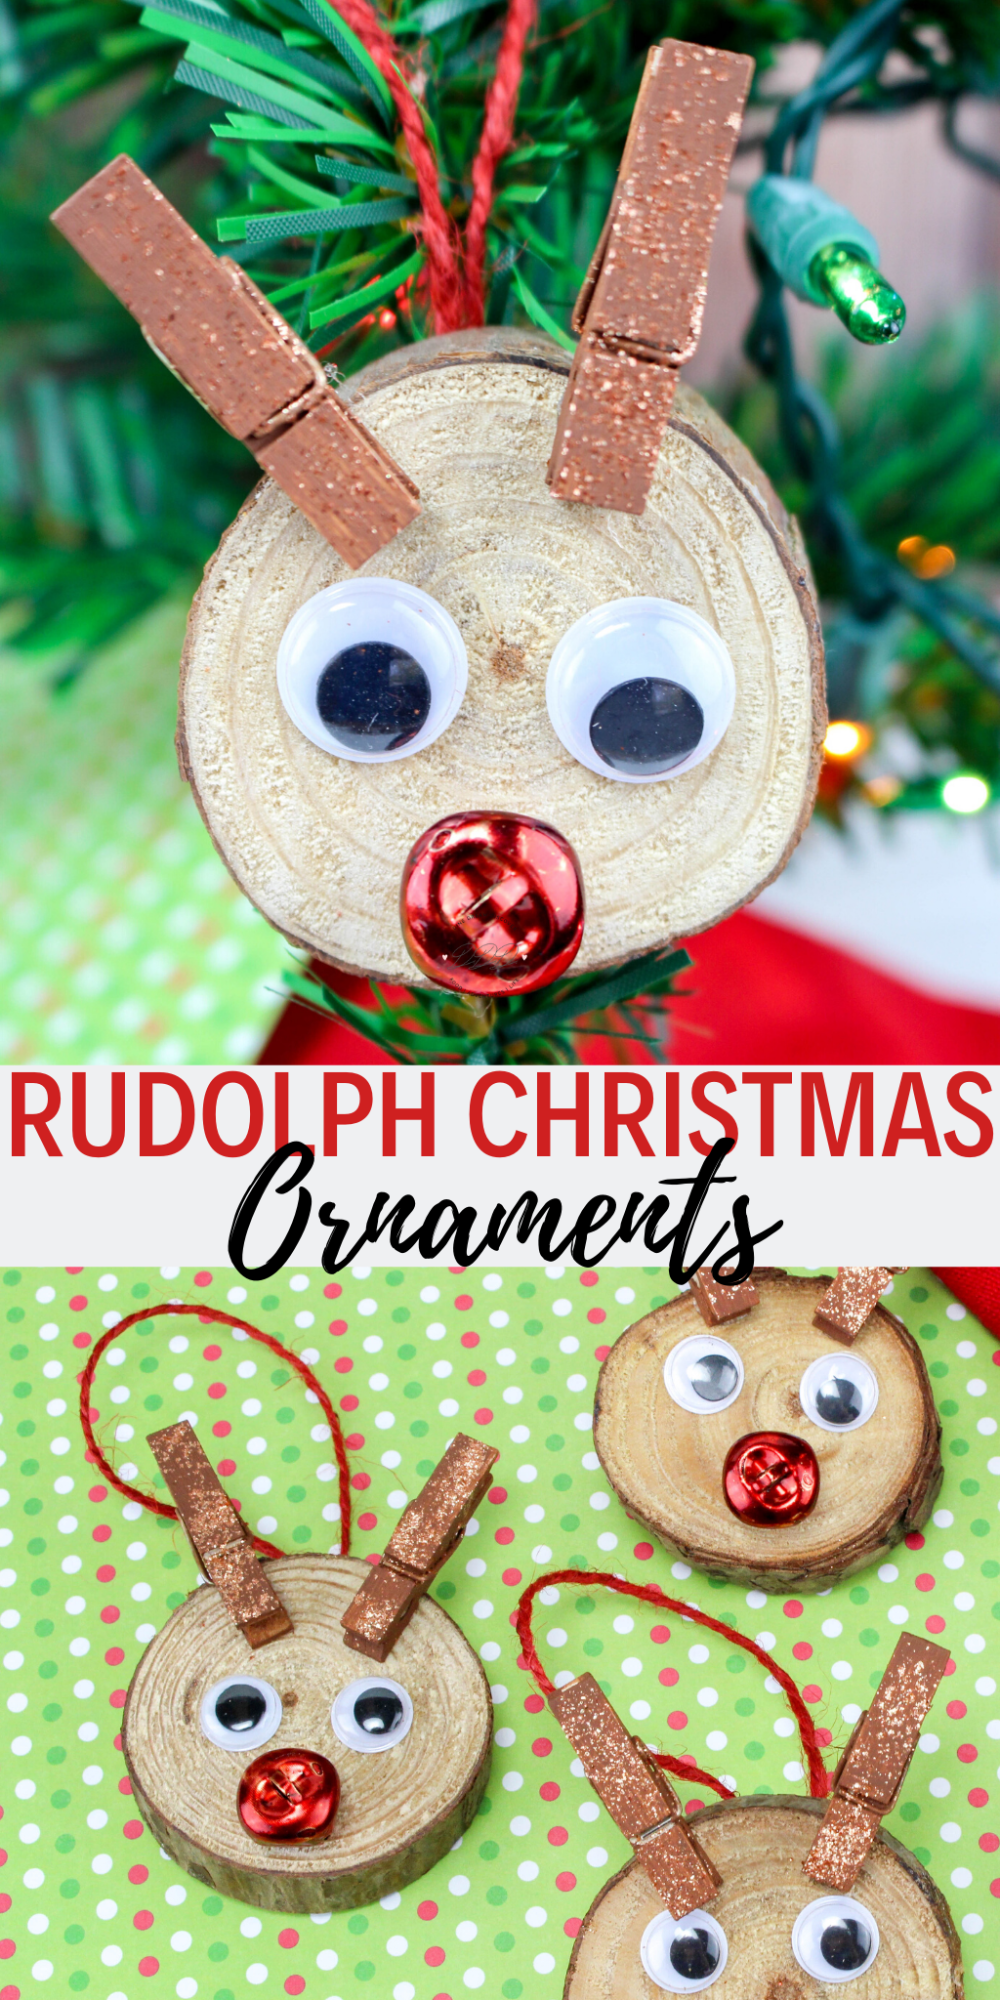 Rudolph Christmas Ornaments Dine Dream Discover Painted Christmas Ornaments Christmas Tree Decorations For Kids Wooden Christmas Crafts